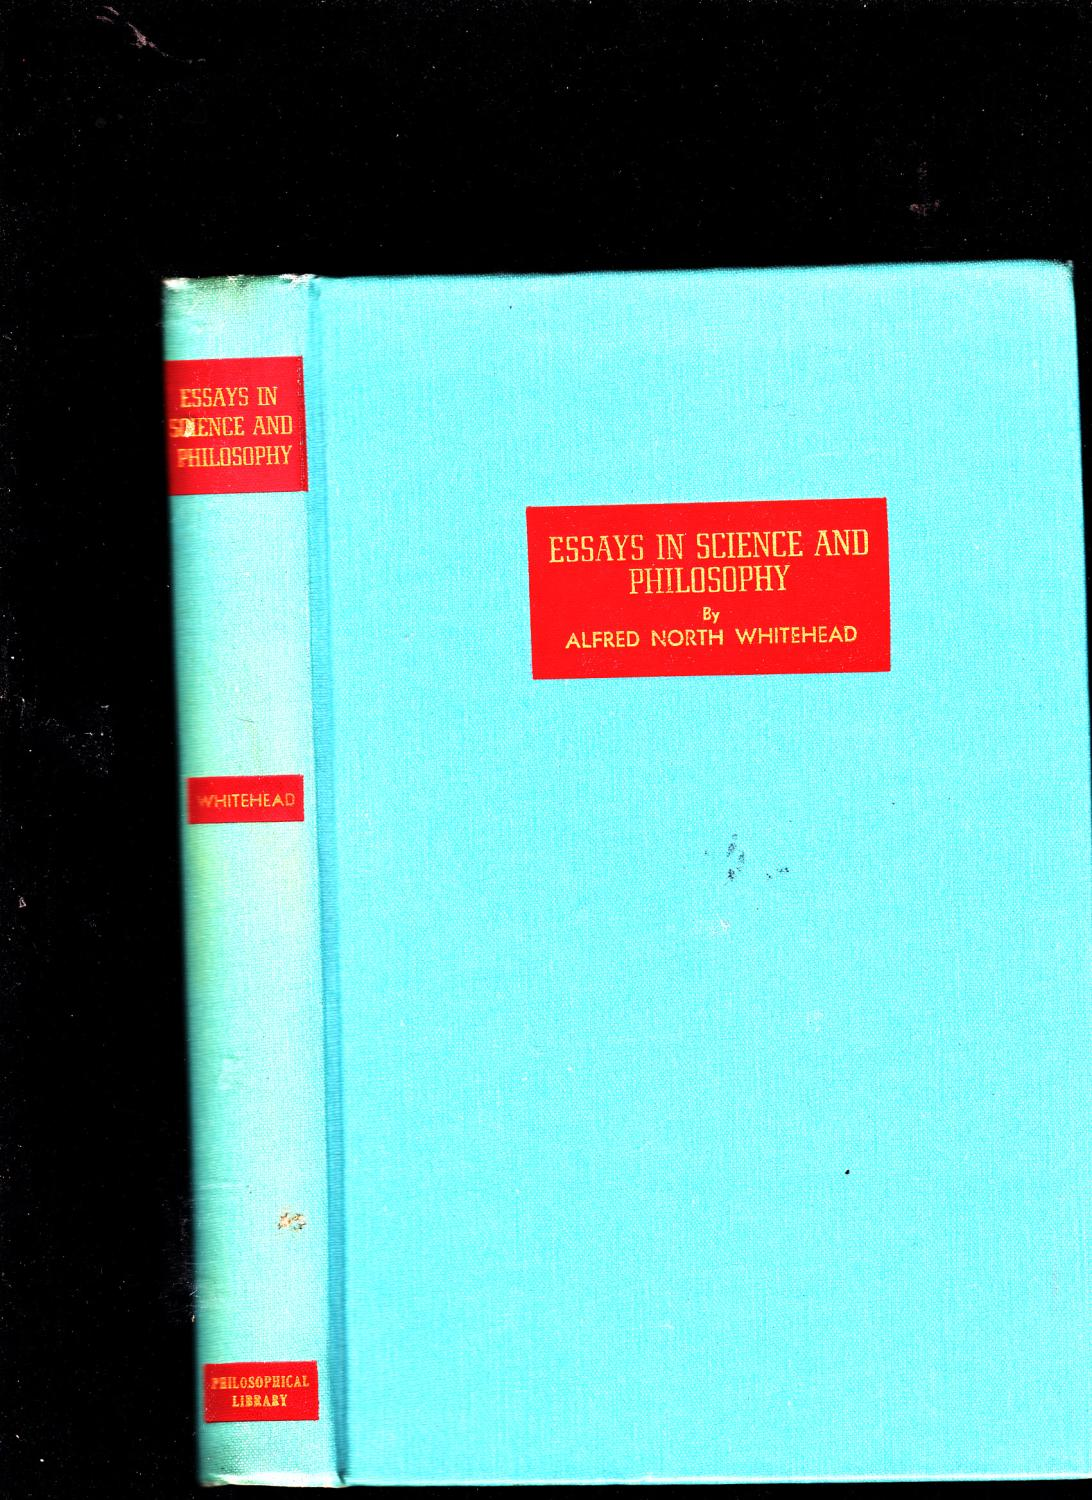 essays science philosophy by whitehead alfred north abebooks